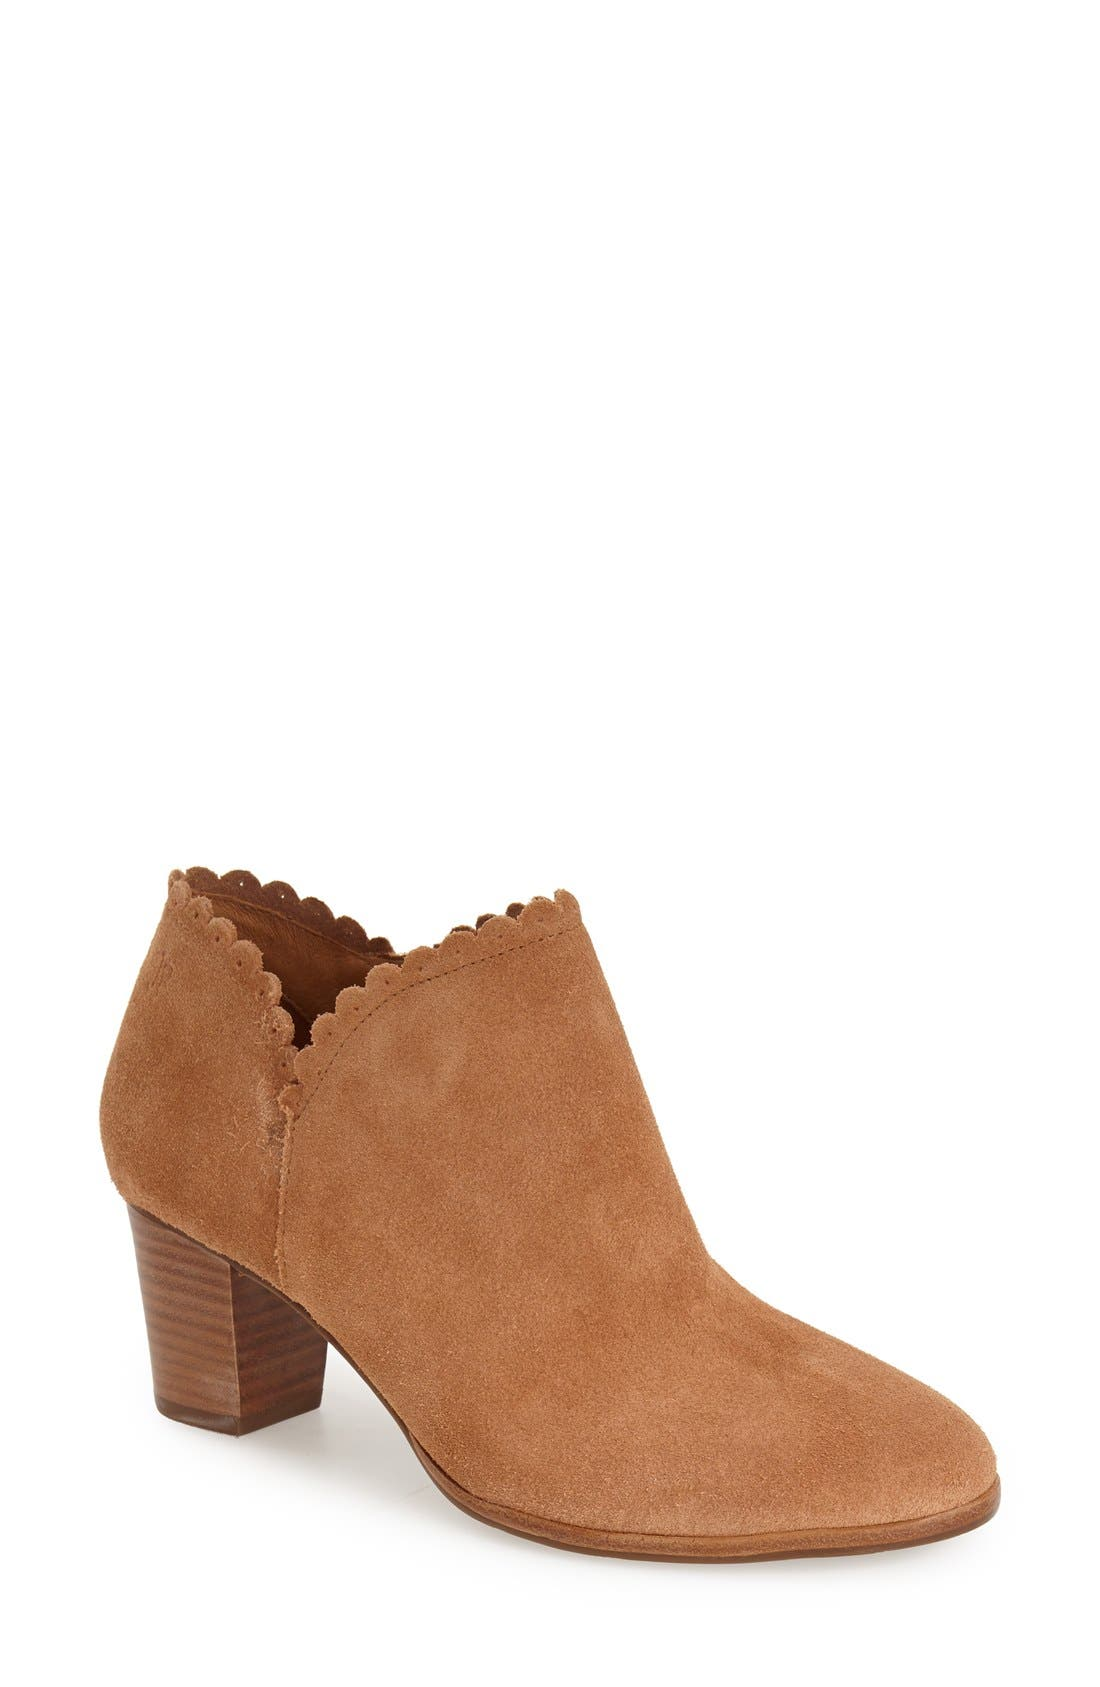 'Marianne' Bootie,                         Main,                         color, 200